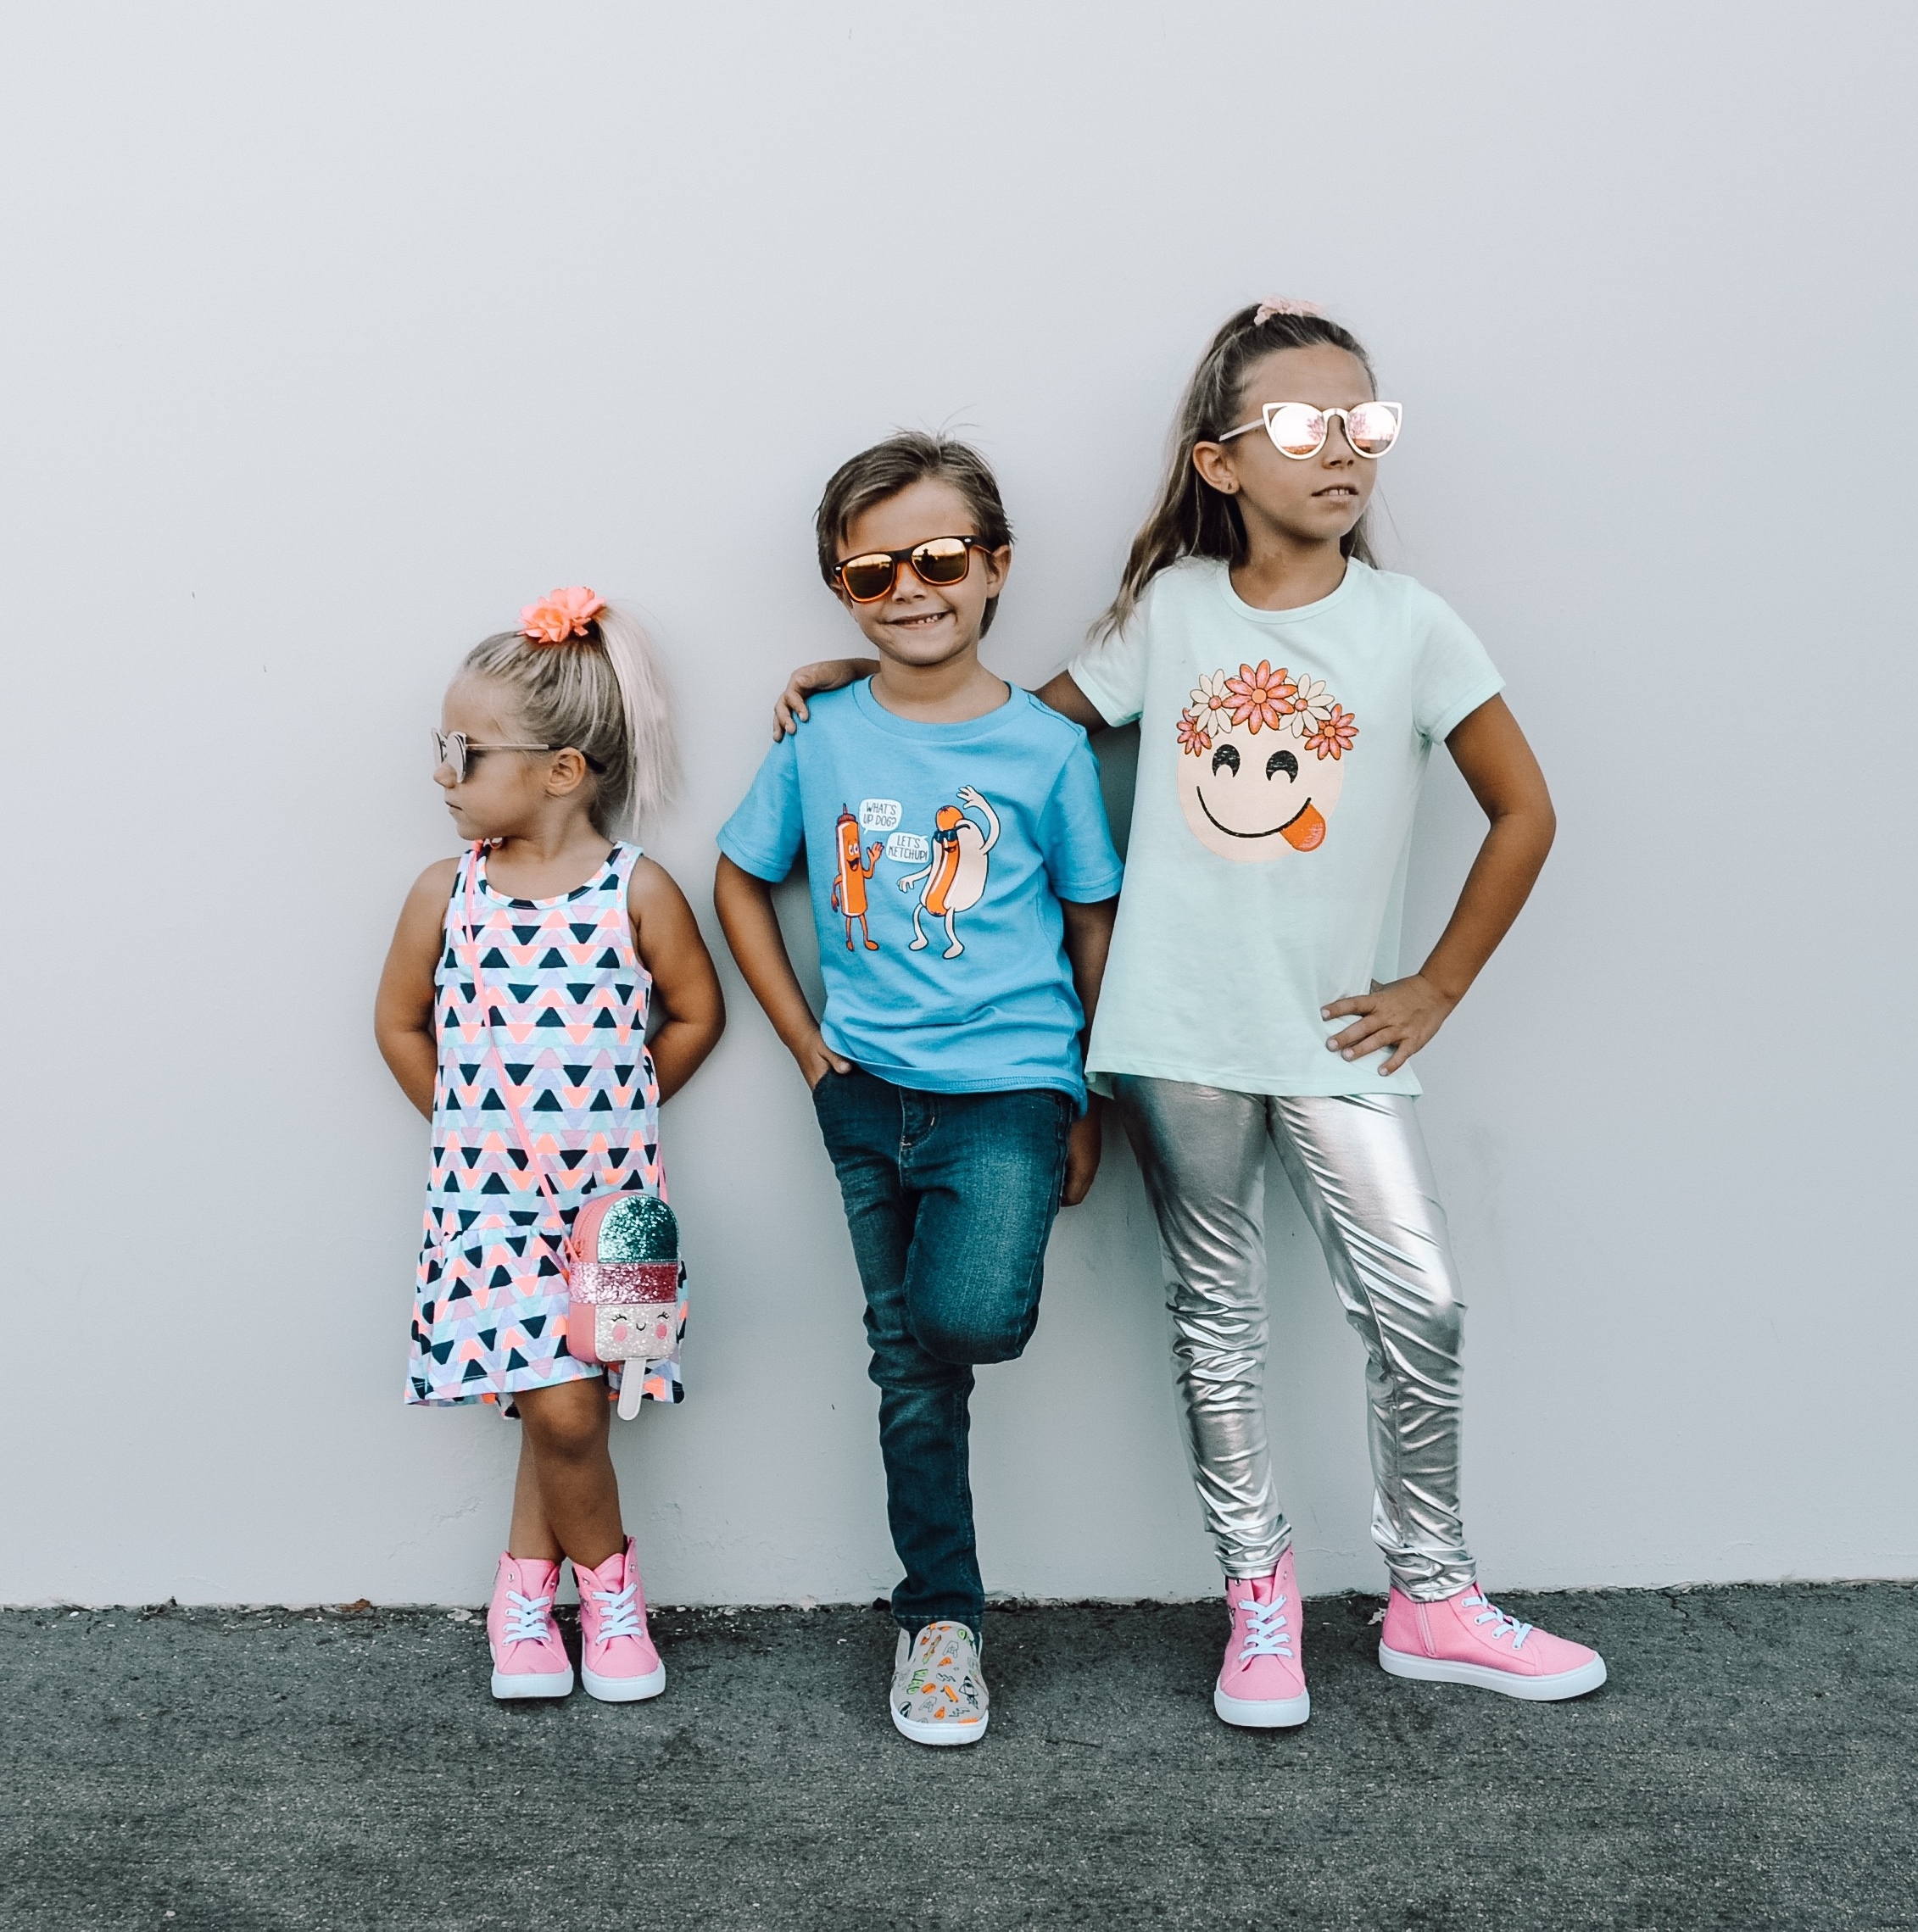 BACK TO SCHOOL WITH FABKIDS- Jaclyn De Leon Style + KID STYLE + HIGH TOPS + SUNGLASSES + KID LIFE + MOM LIFE + GETTING READY FOR SCHOOL + CHILDREN SNEAKERS + DENIM + GRAPHIC TEE + DRESS + EMOJI TOP + KIDS FOR REAL + FALL STYLE + SCHOOL OUTFITS